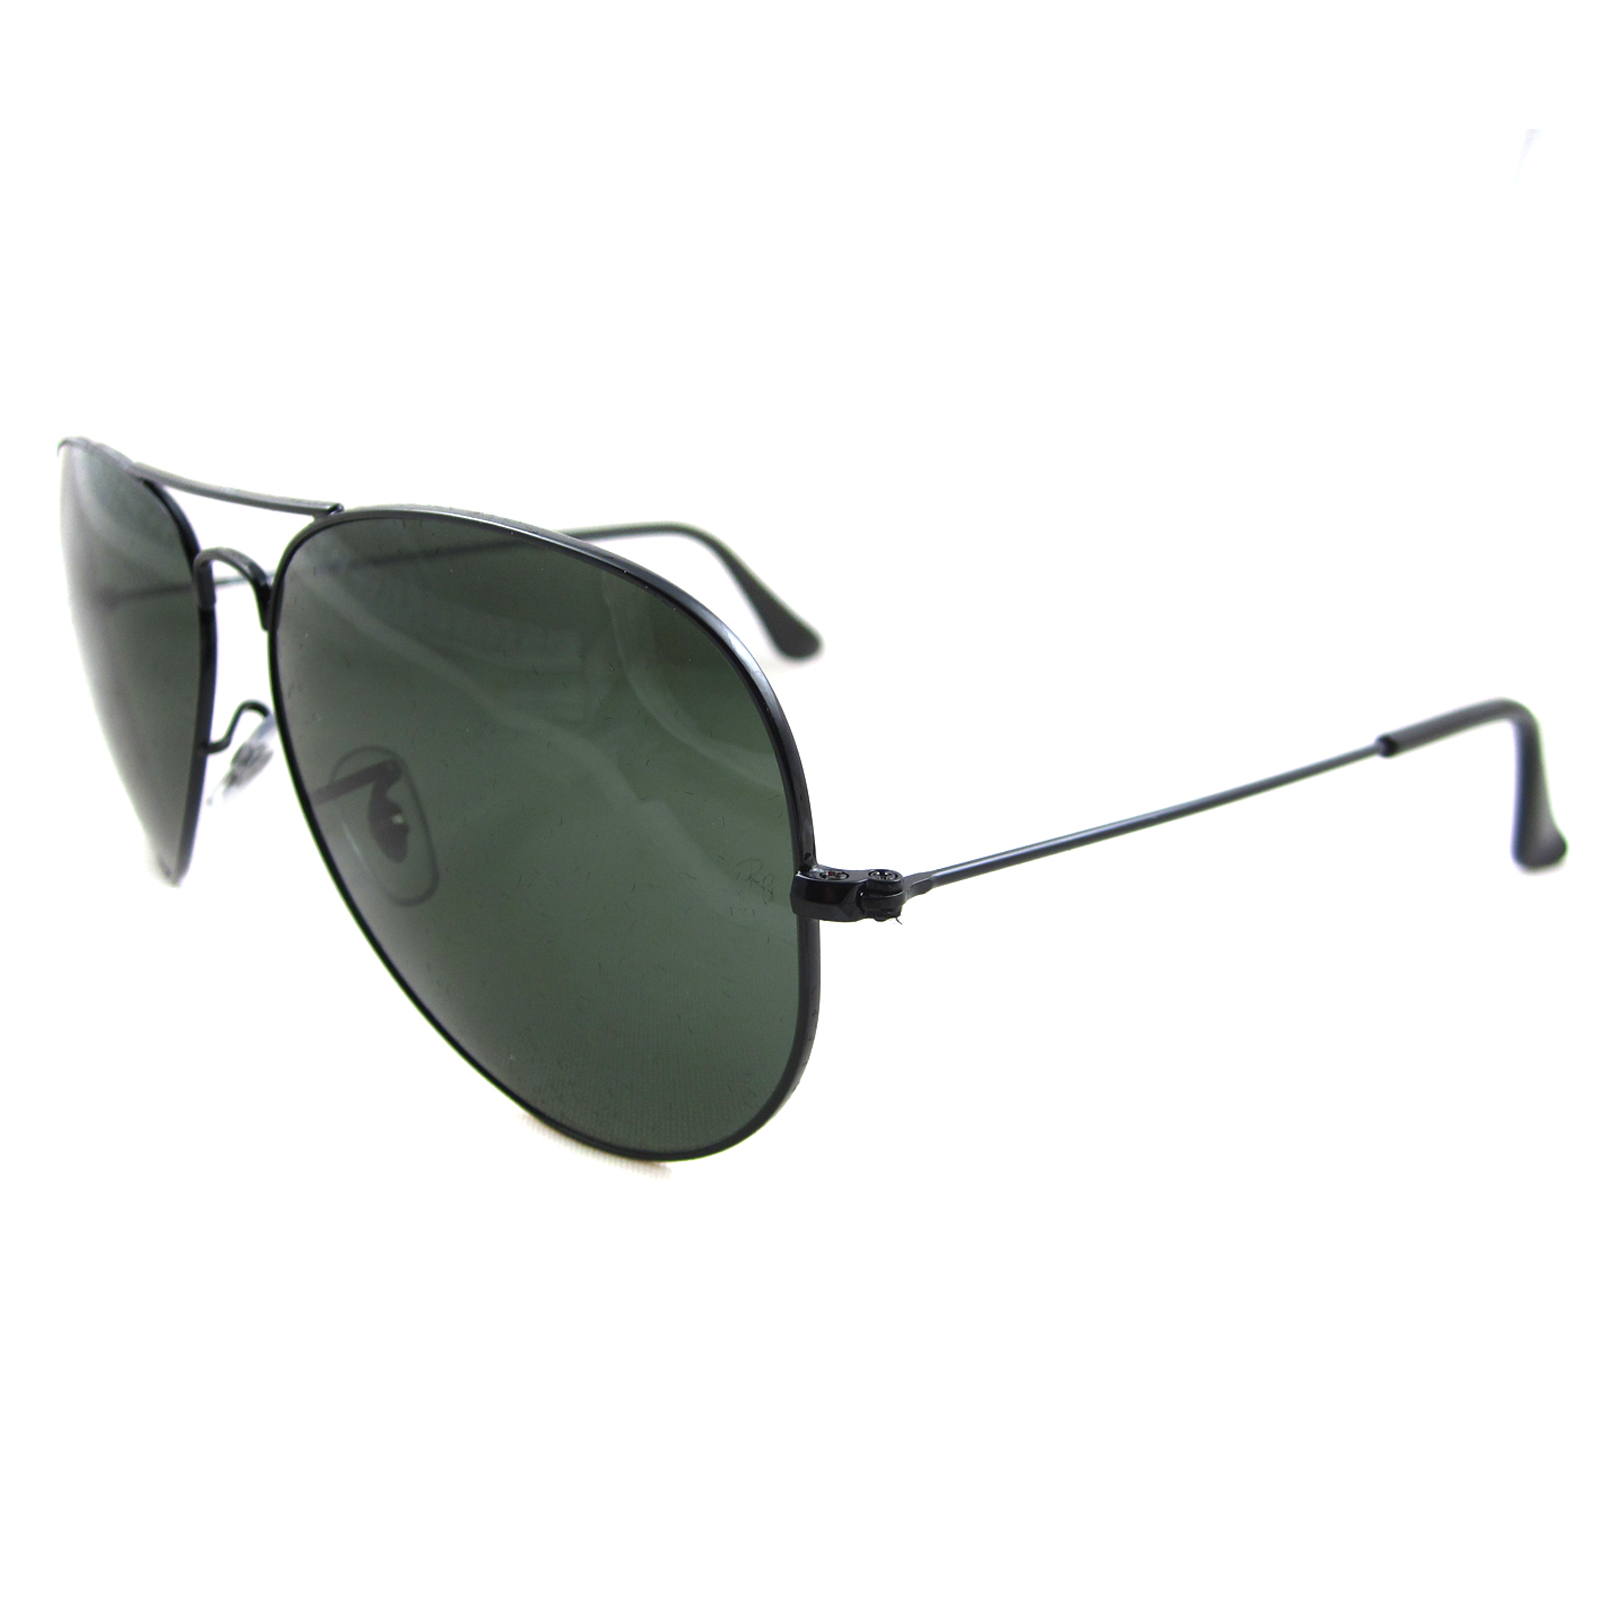 1850af39969 Cheap Ray-Ban Large Aviator 3026 Sunglasses - Discounted Sunglasses